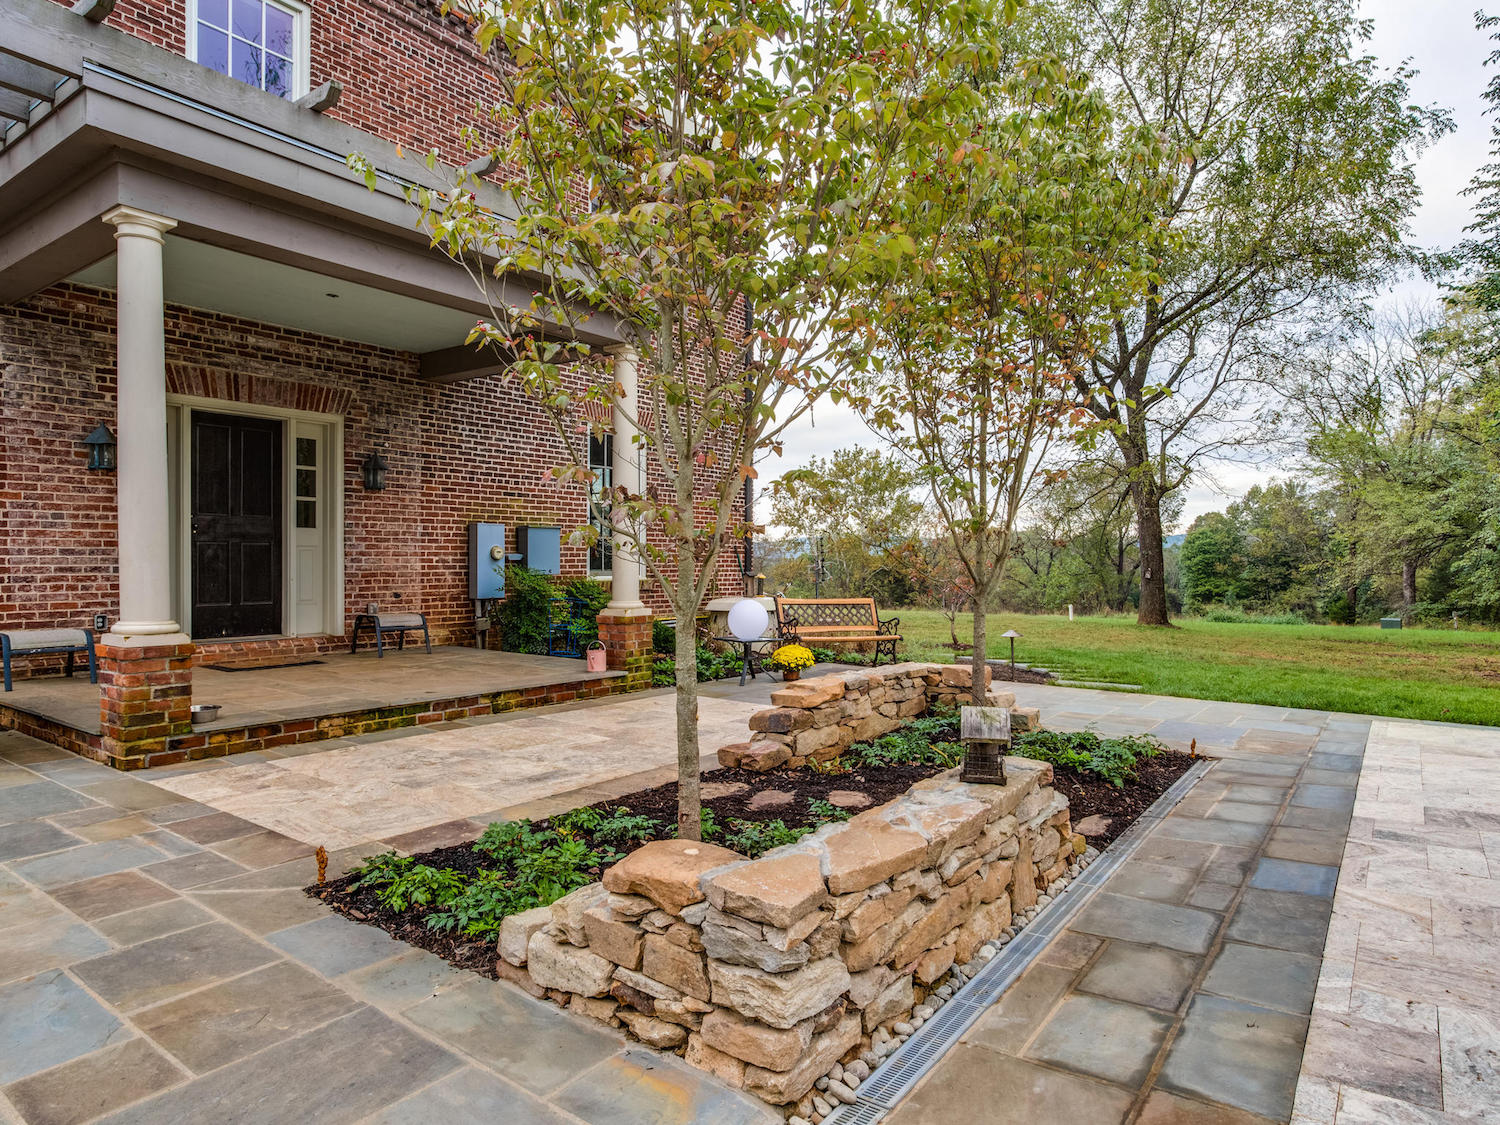 patio landscape designed with stone walls travertine and flagstone